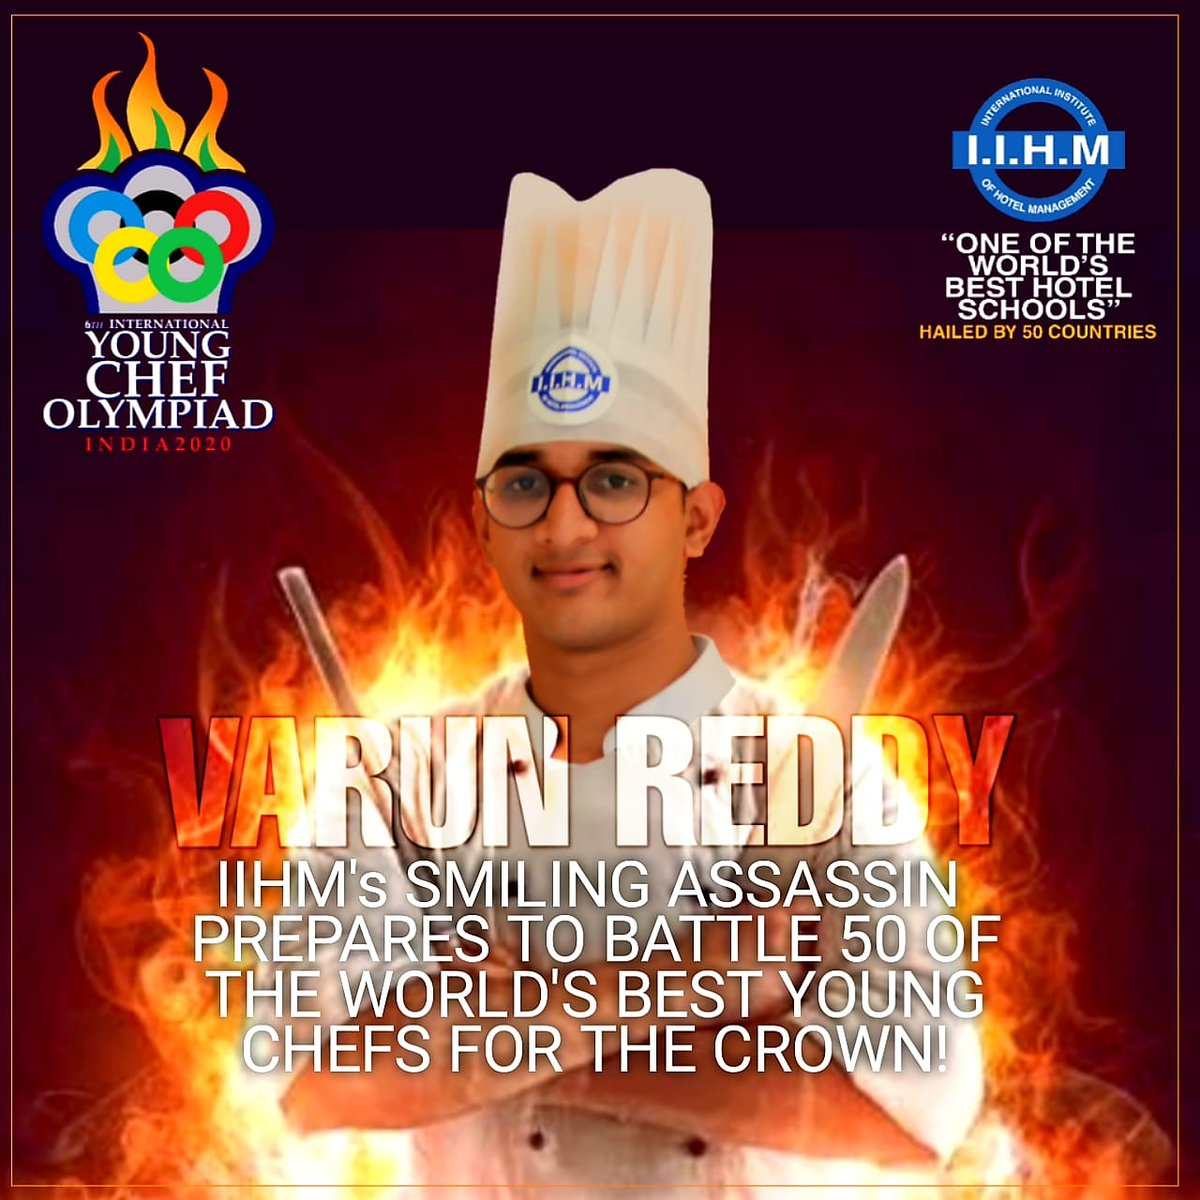 #YCO2020 @IIHMHOTELSCHOOL's smiling assassin prepares for battle. Varun reddy, our Culinary prodigy, here to dominate the Global kitchen with full power.  days until he fights his way to the golden toque of victory #IIHMBest3Years #Cooking #battleforthebest #chefslifepic.twitter.com/nr62XktT8s